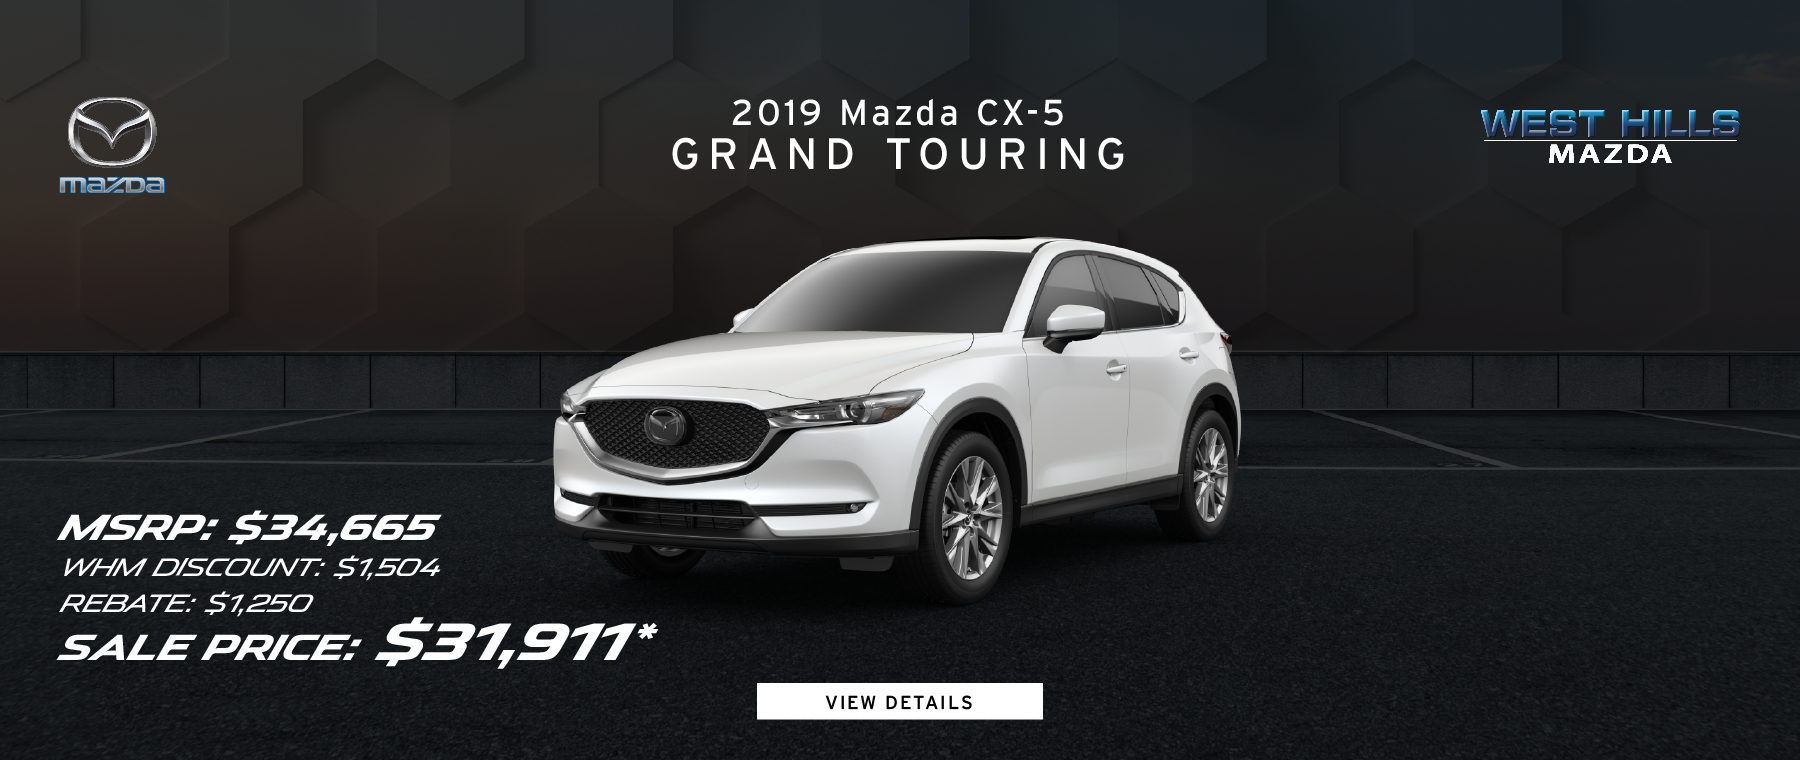 2019 Mazda CX-5 Grand Touring  MSRP: $34,665 WHM Discount: $1,504 Rebate: $1,250 Sale Price: $31,911* *Valid on 2019 Mazda CX-5 Grand Touring. Valid on VIN: JM3KFBDM9K0519218. MSRP is $34,665. Dealer Discount of $1,504. Rebate: $1,250. Sale Price: $31,911. Subject to credit approval. Down payment and monthly payment may vary. Not all will qualify for rebate. Excludes state and local taxes, tags, registration and title, insurance and dealer charges. A negotiable dealer documentary service fee of up to $150 may be added to the sale price or capitalized cost. Limit one discount per vehicle per customer. See dealer for complete details. Offer Expires: 7/31/2019.